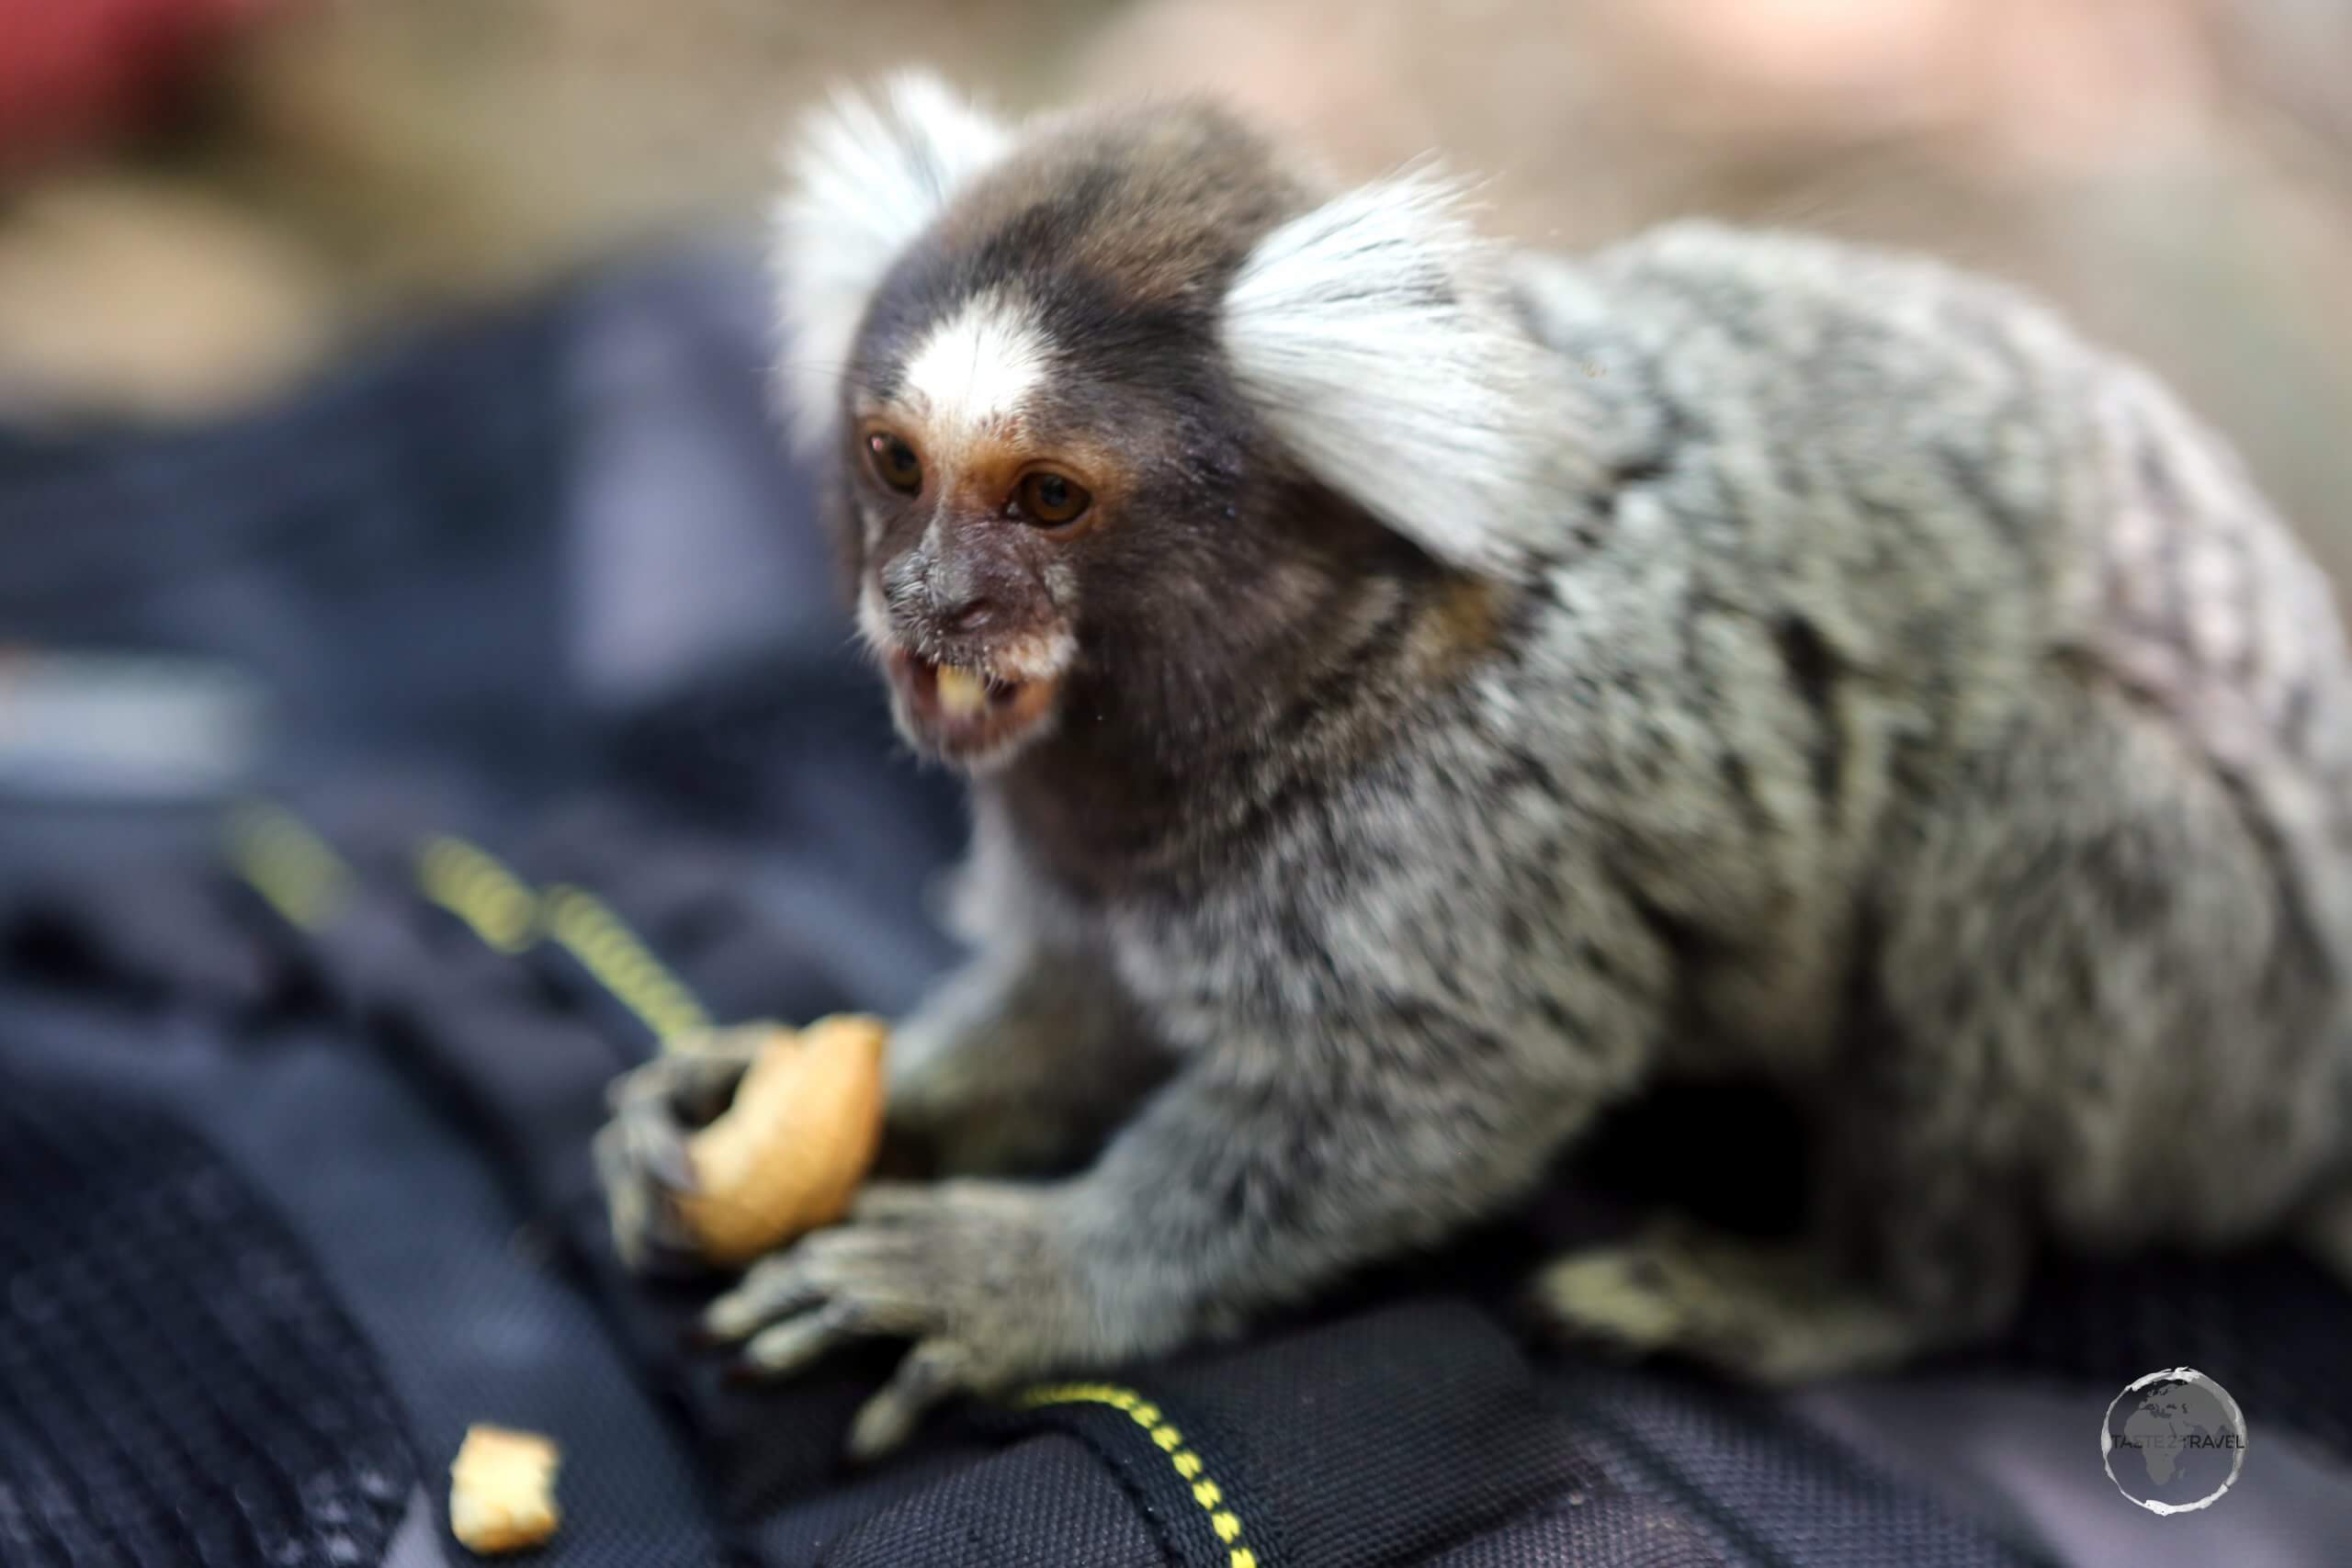 The very cute Common Marmoset, seen here at Pipa beach eating a cashew on my camera bag, is a New World monkey which is native to the north-eastern coast of Brazil.